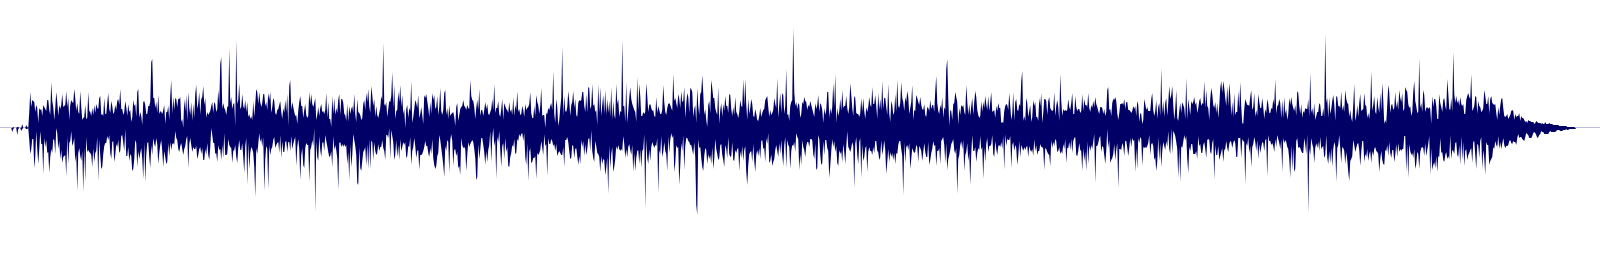 waveform of track #90764